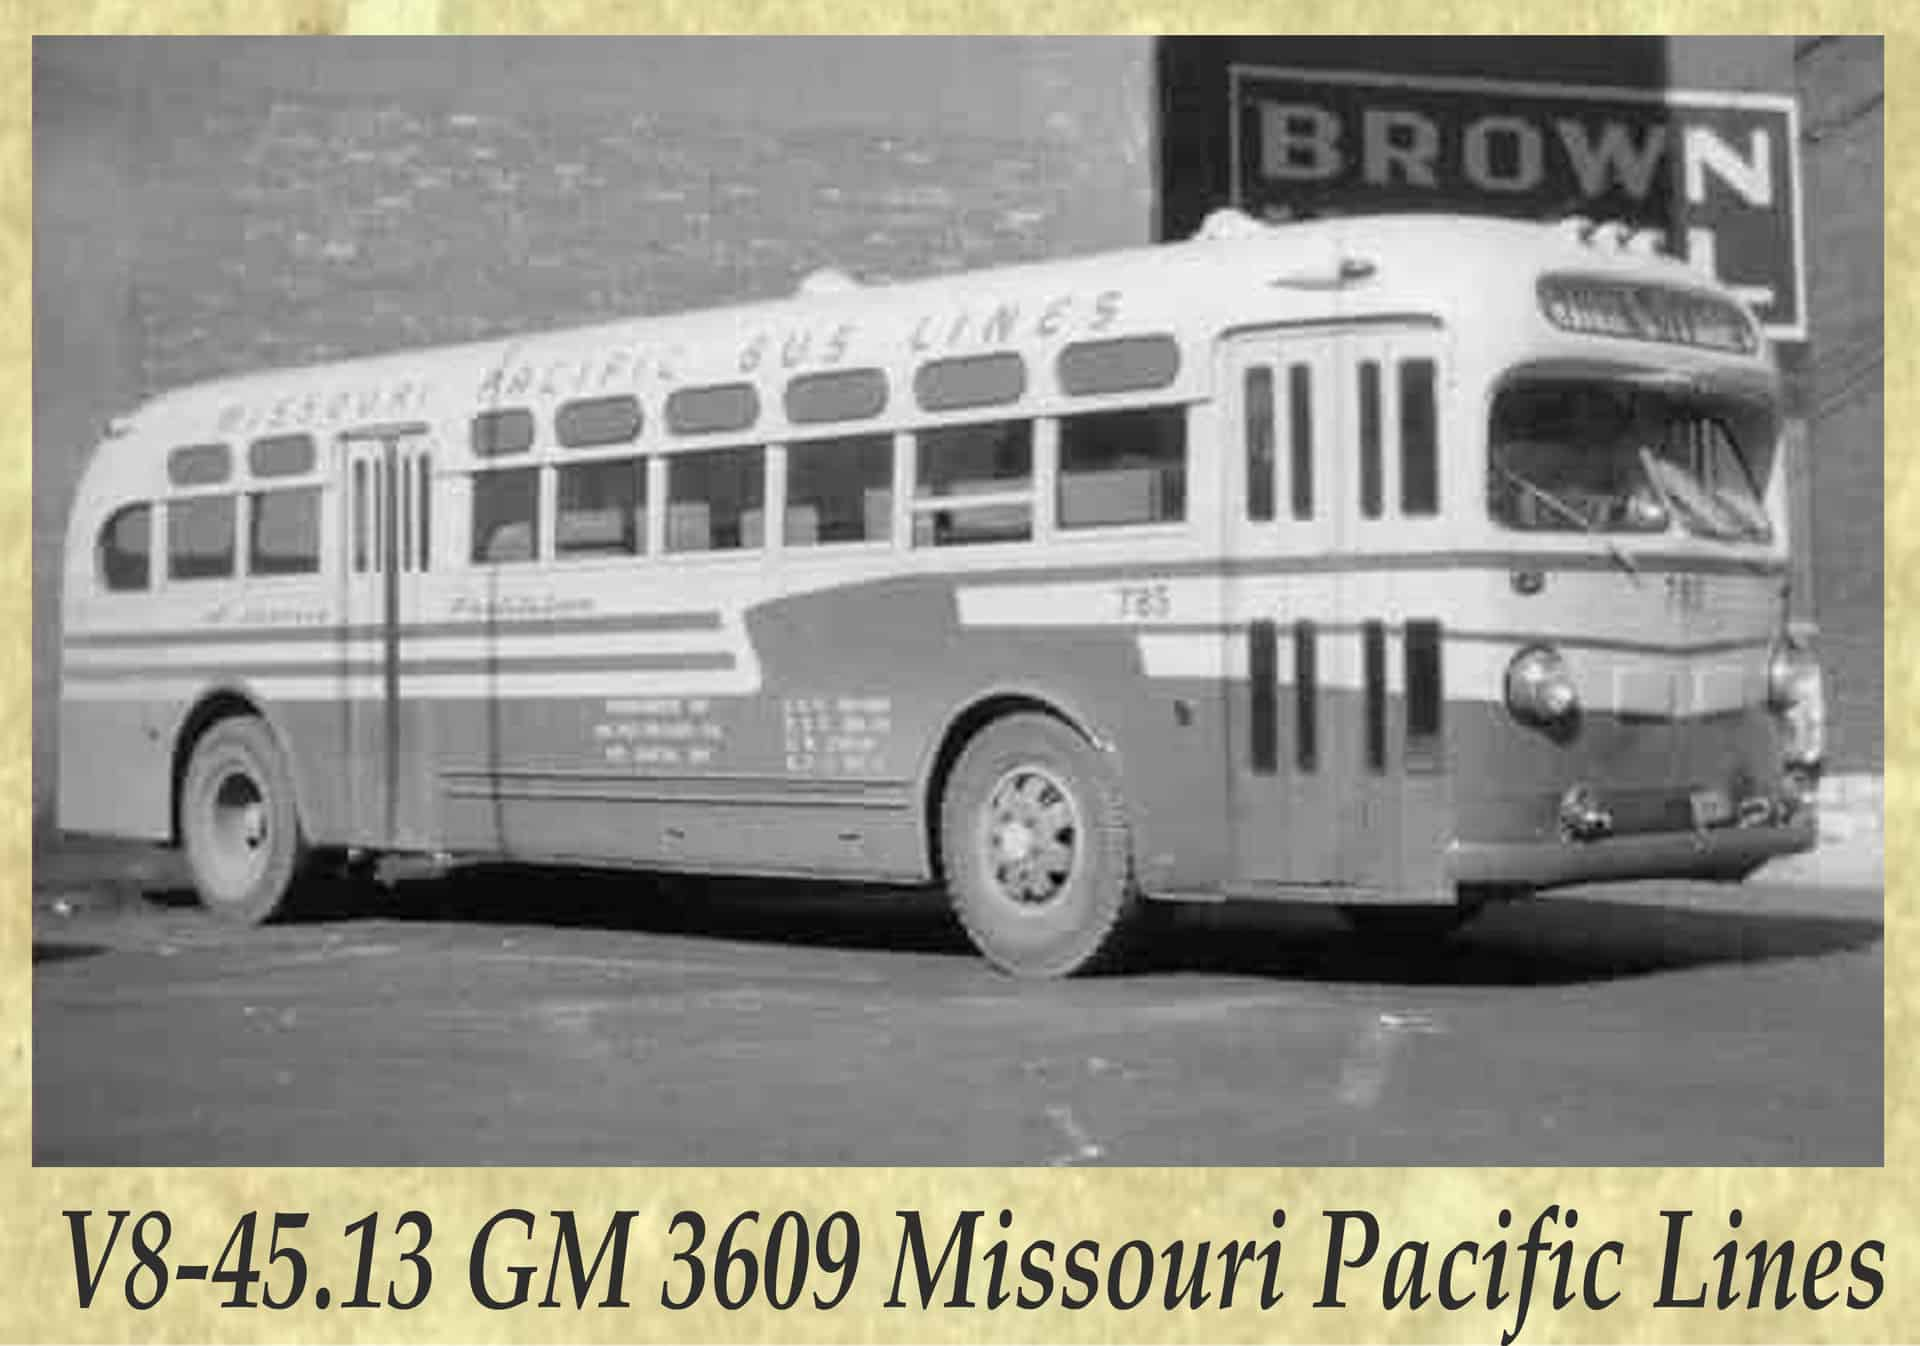 V8-45.13 GM 3609 Missouri Pacific Lines